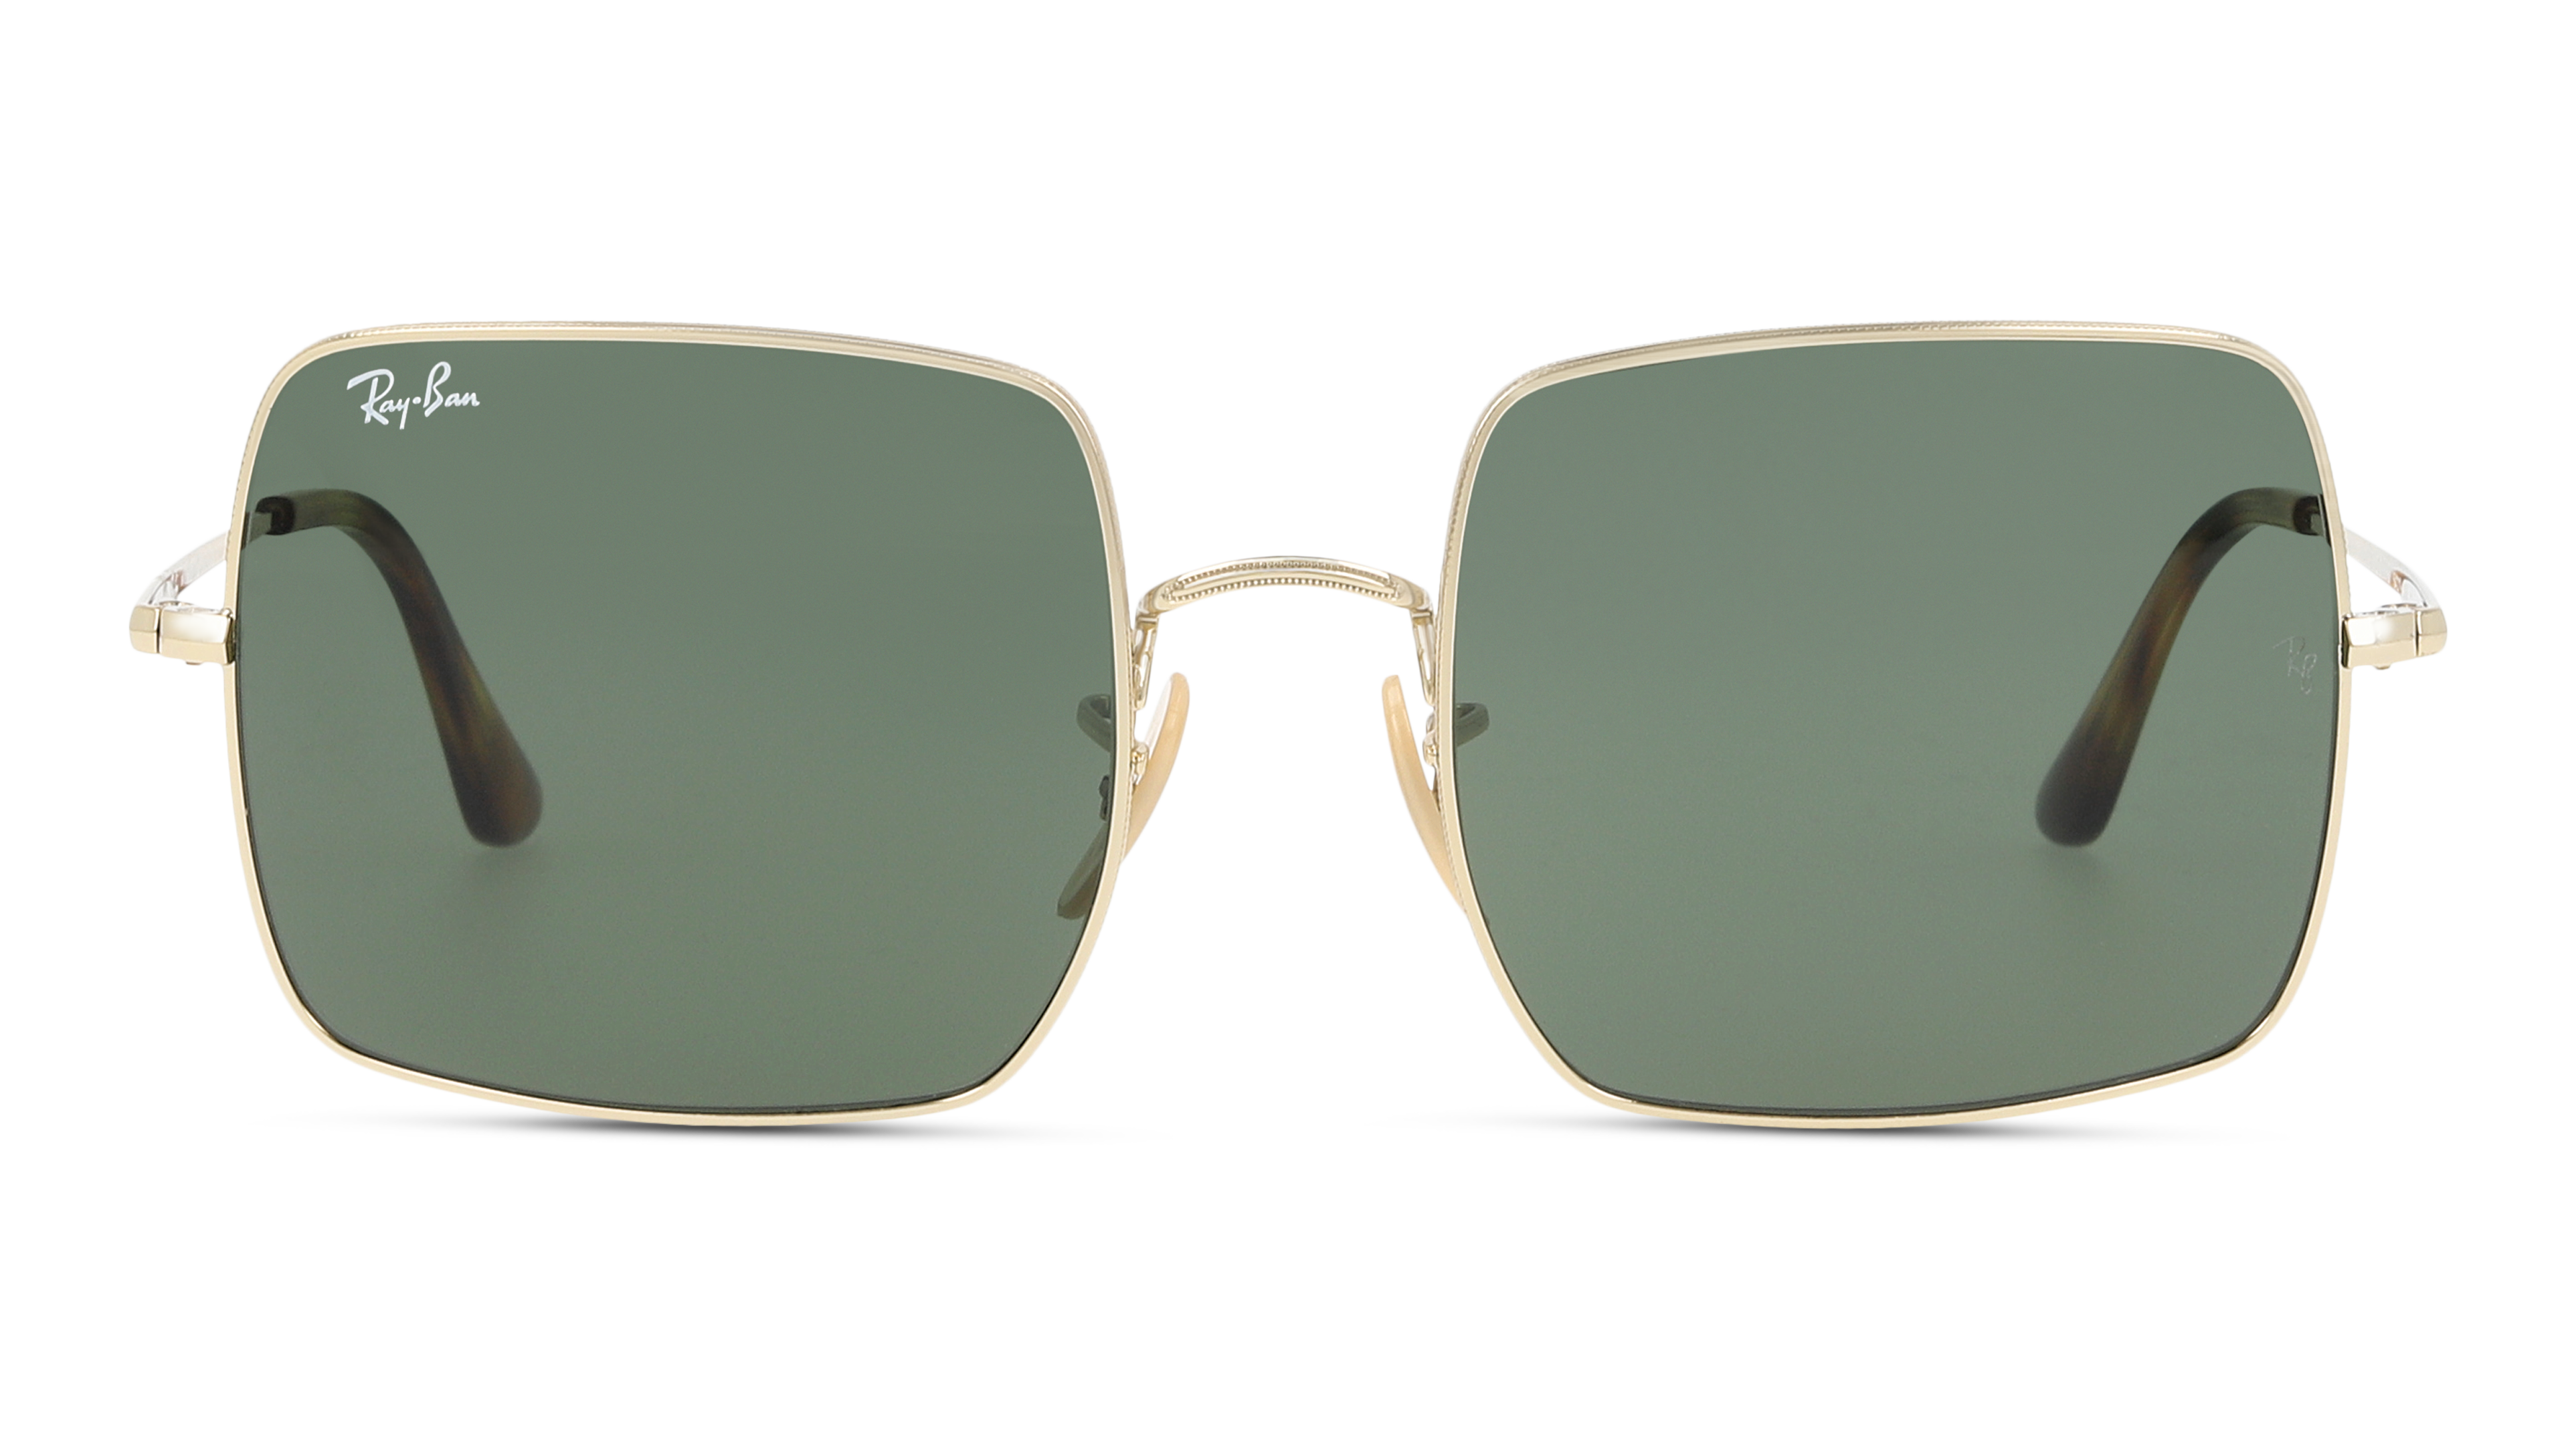 Front Ray-Ban RayBan 1971 914731 54/19 Oro/Verde